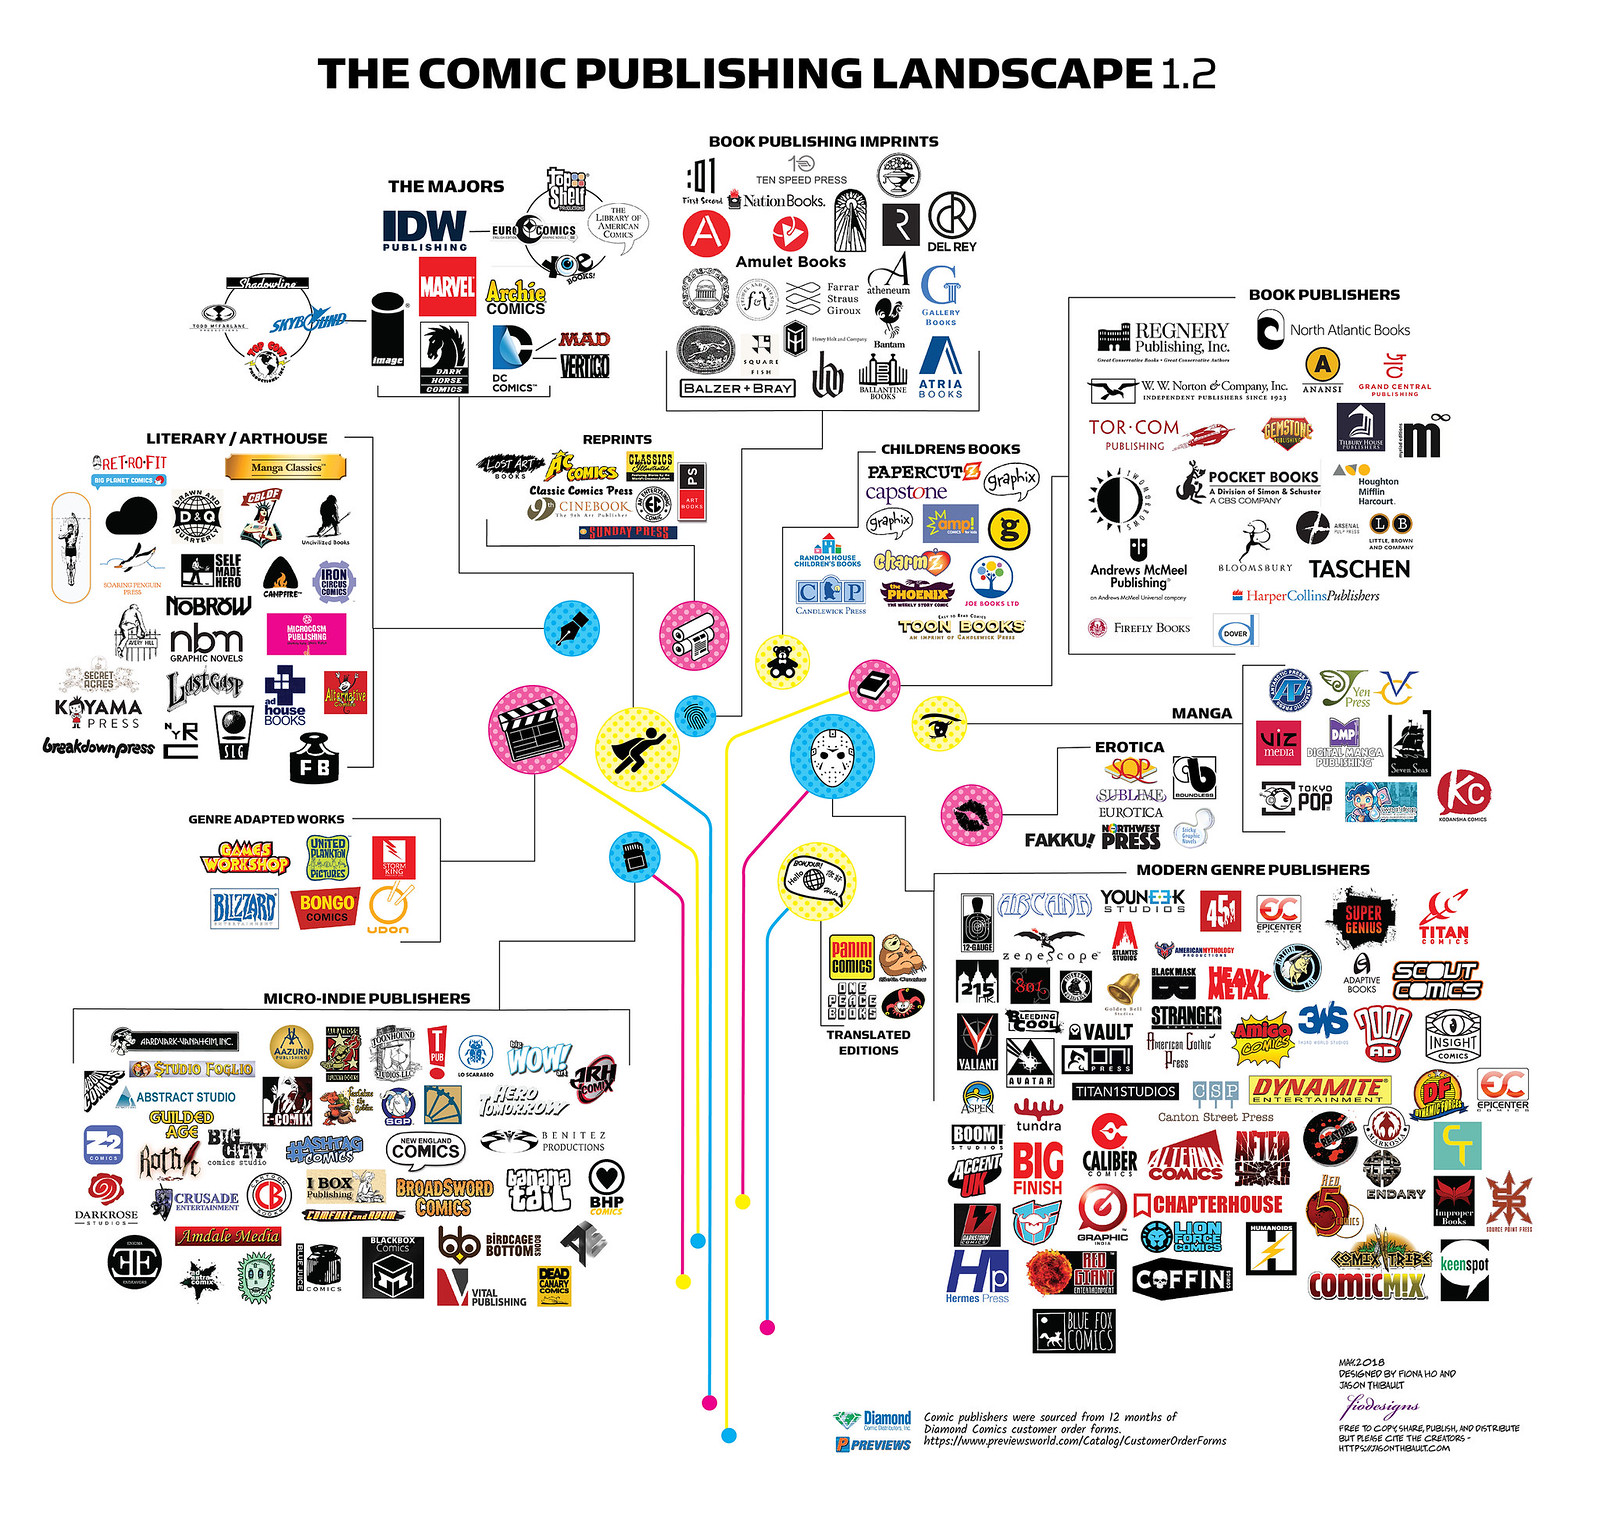 The Comic Publishing Landscape v1.2